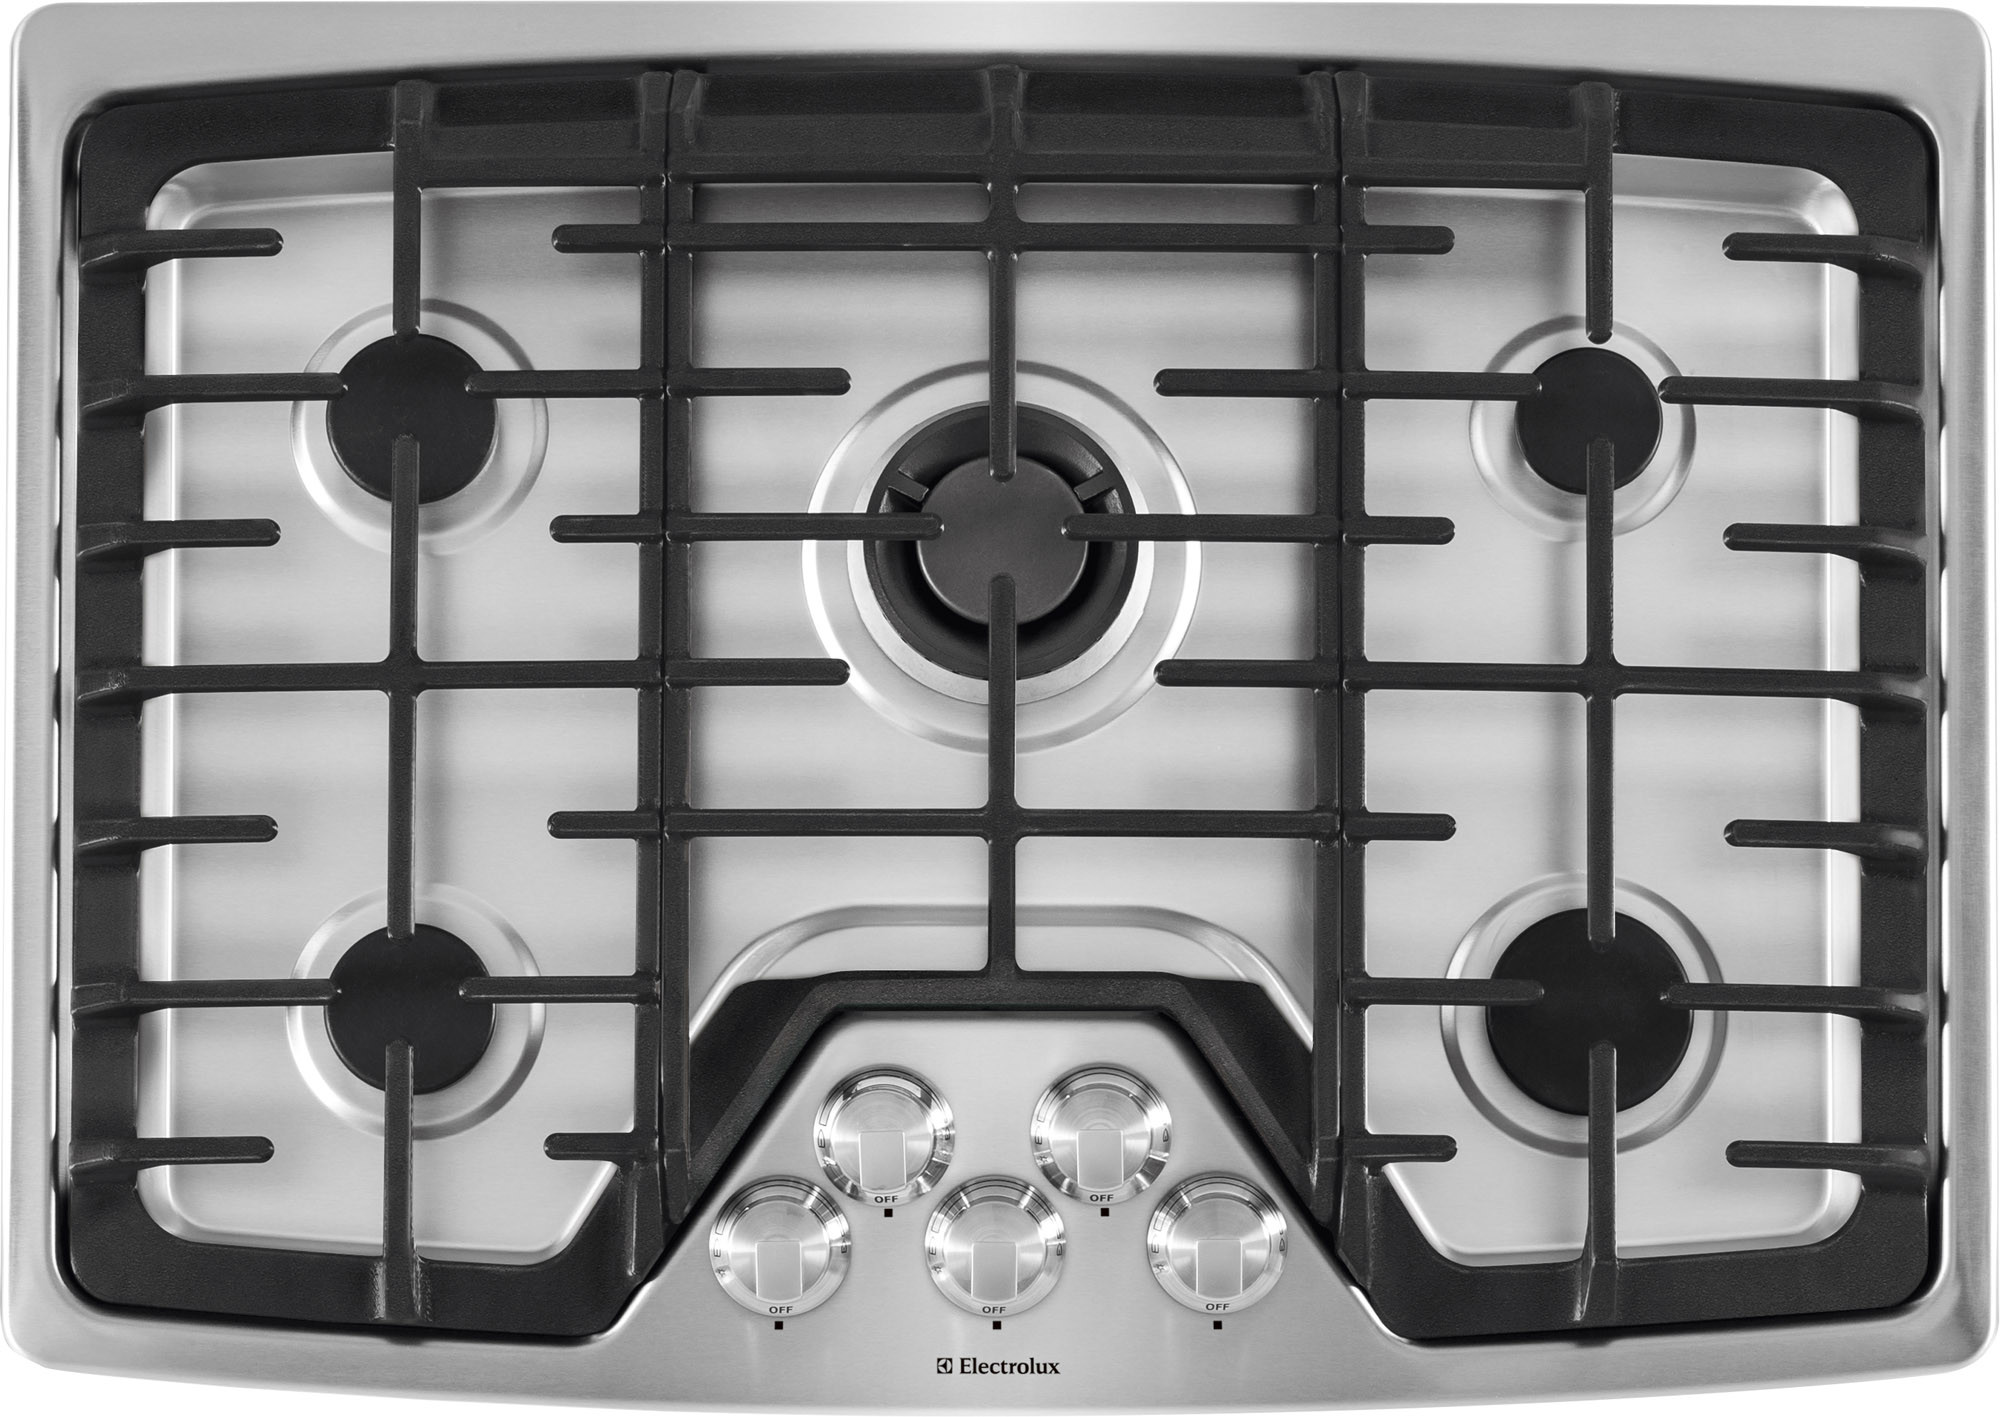 Electrolux Cooktop 30 StainlessSteel EW30GC60PS